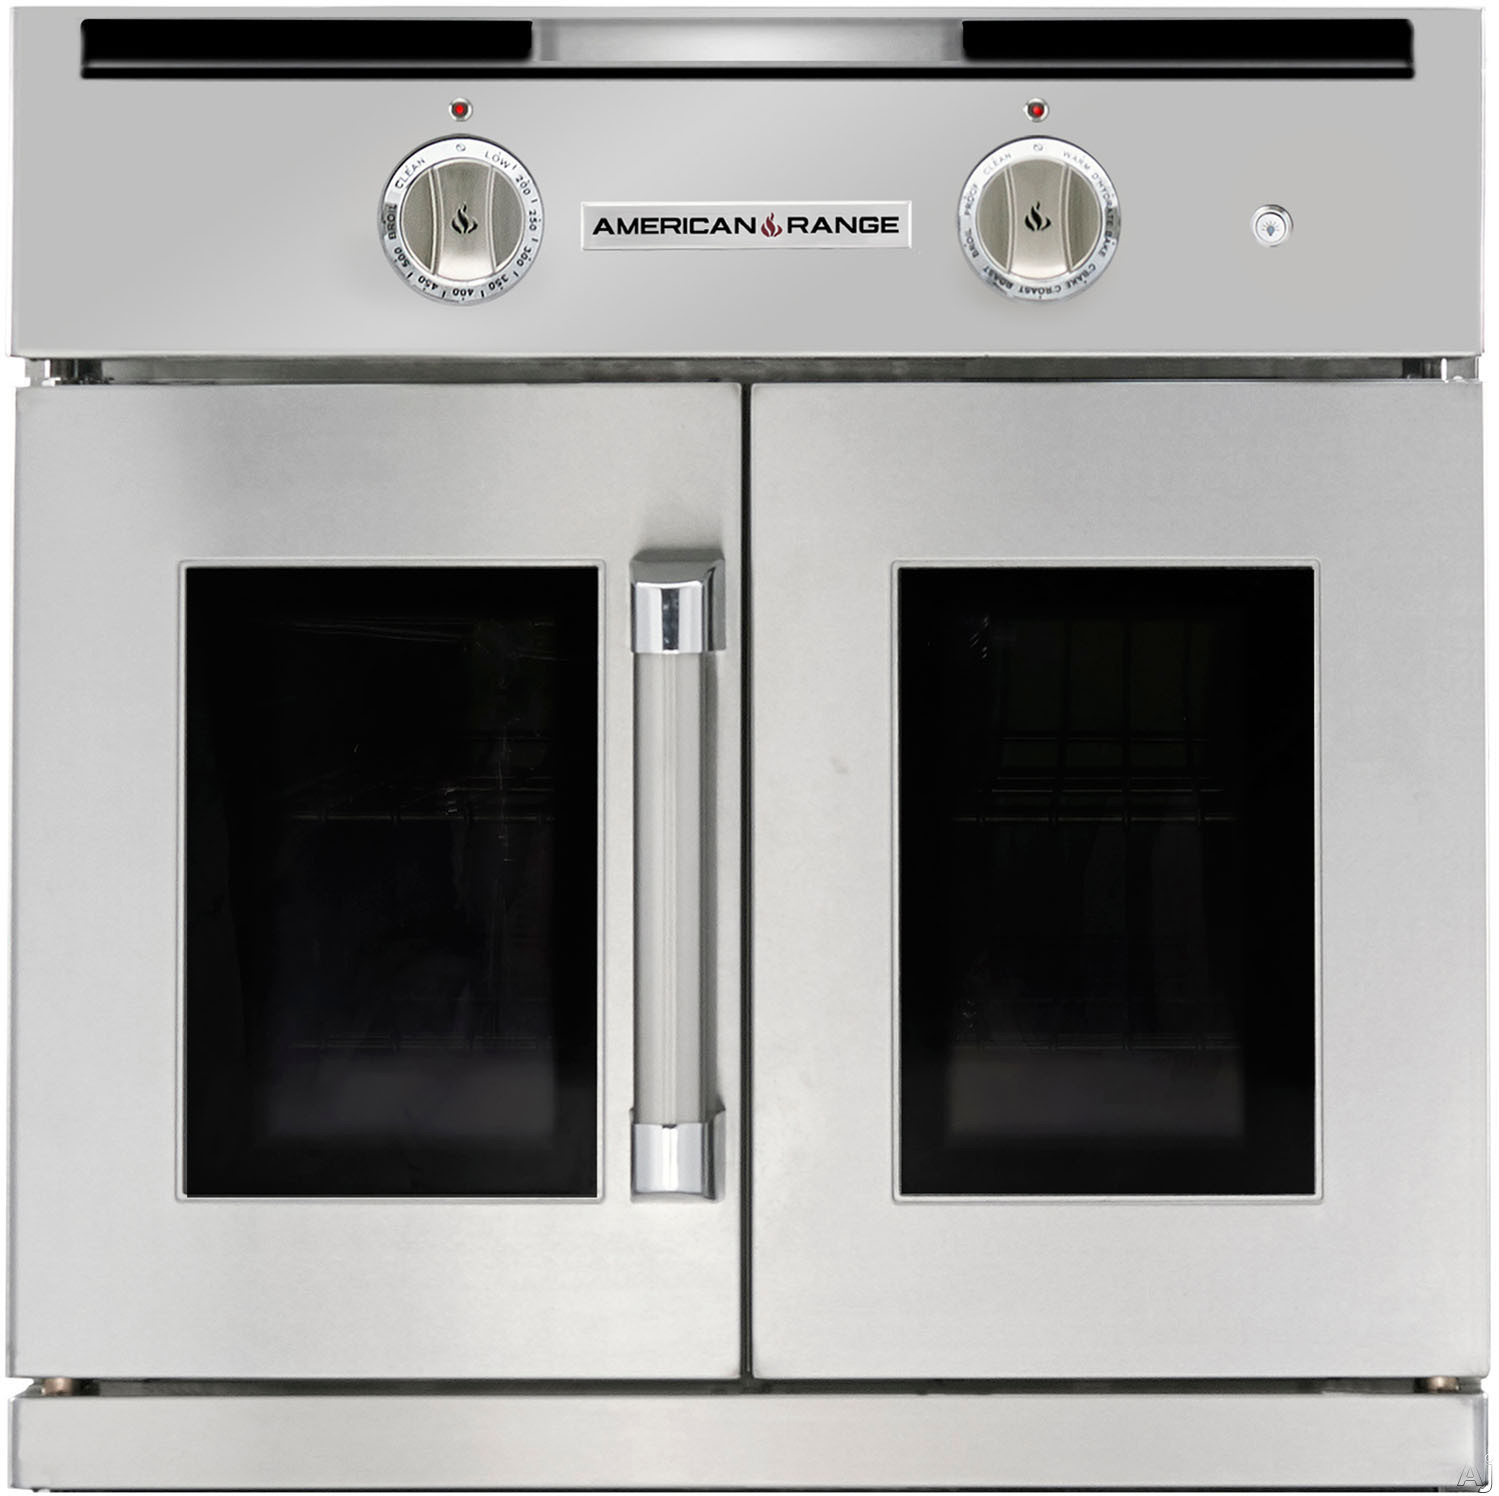 American Range Legacy Series AROFG30N 30 Inch Single French Door Gas Wall Oven with 4.7 cu. ft. Capacity, Innovection Convection, Manual Clean, Infrared Broiler and Porcelainized Interior: Natural Gas